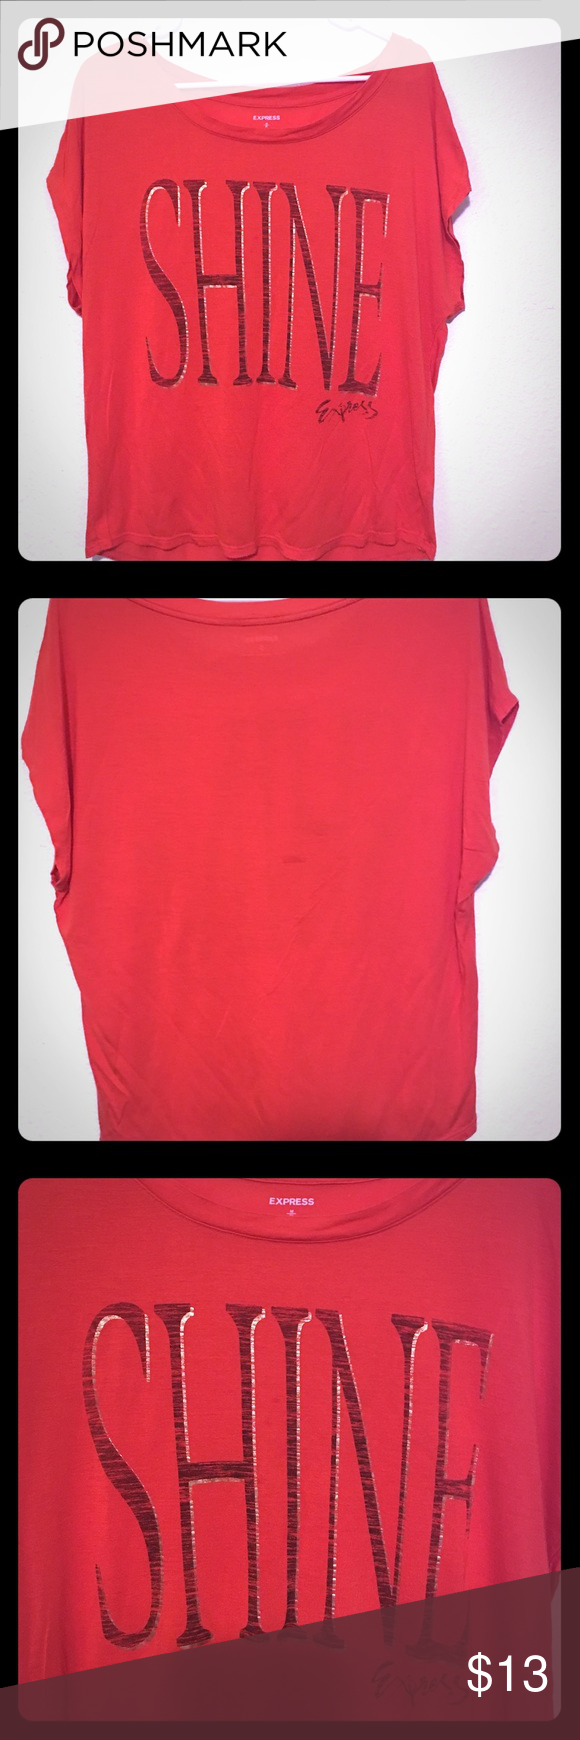 Black t shirt express - Express T Shirt Express T Shirt In With A Large Collar That You Can Wear